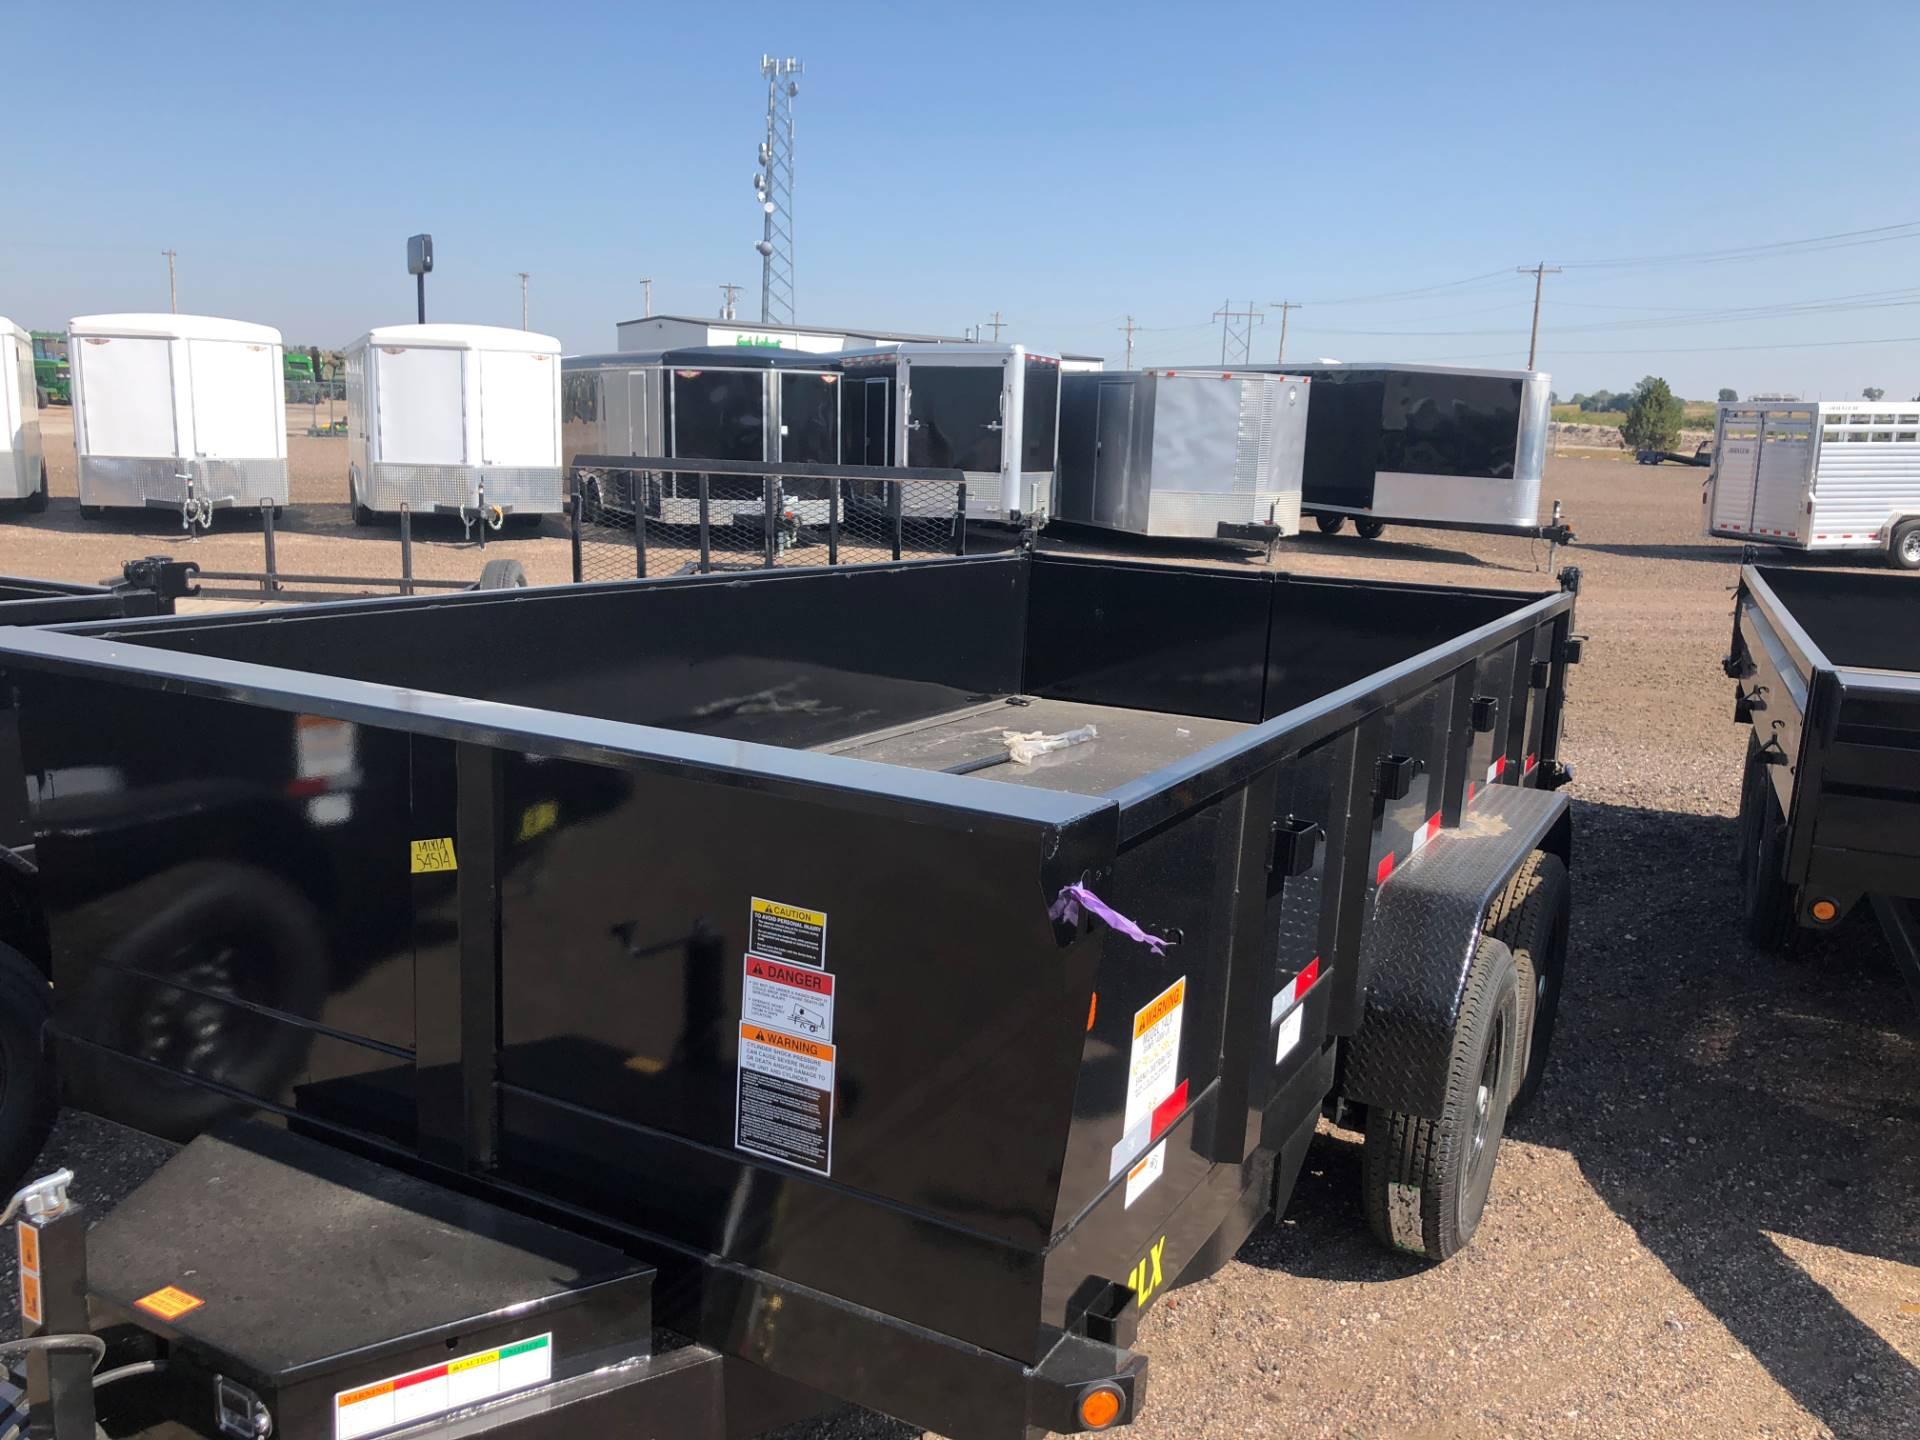 2019 Big Tex Trailers - Manufacturers BIG TEX 14' TANDEM G/N OA 14K W/FOLD DOWN SIDES DUMP TRAILER  in Scottsbluff, Nebraska